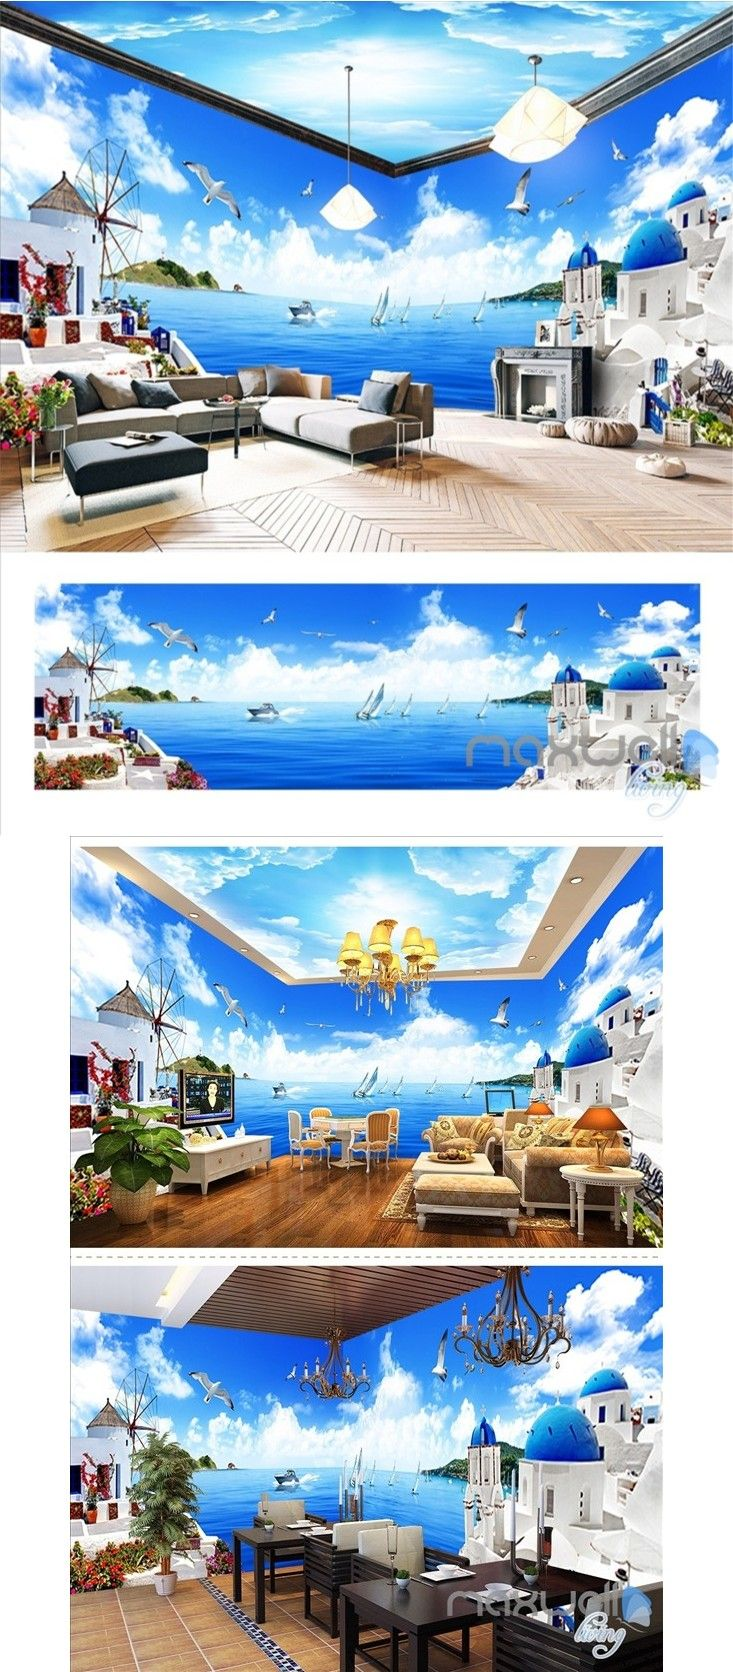 Mediterranean style theme space entire room wallpaper wall mural decal IDCQW-000010